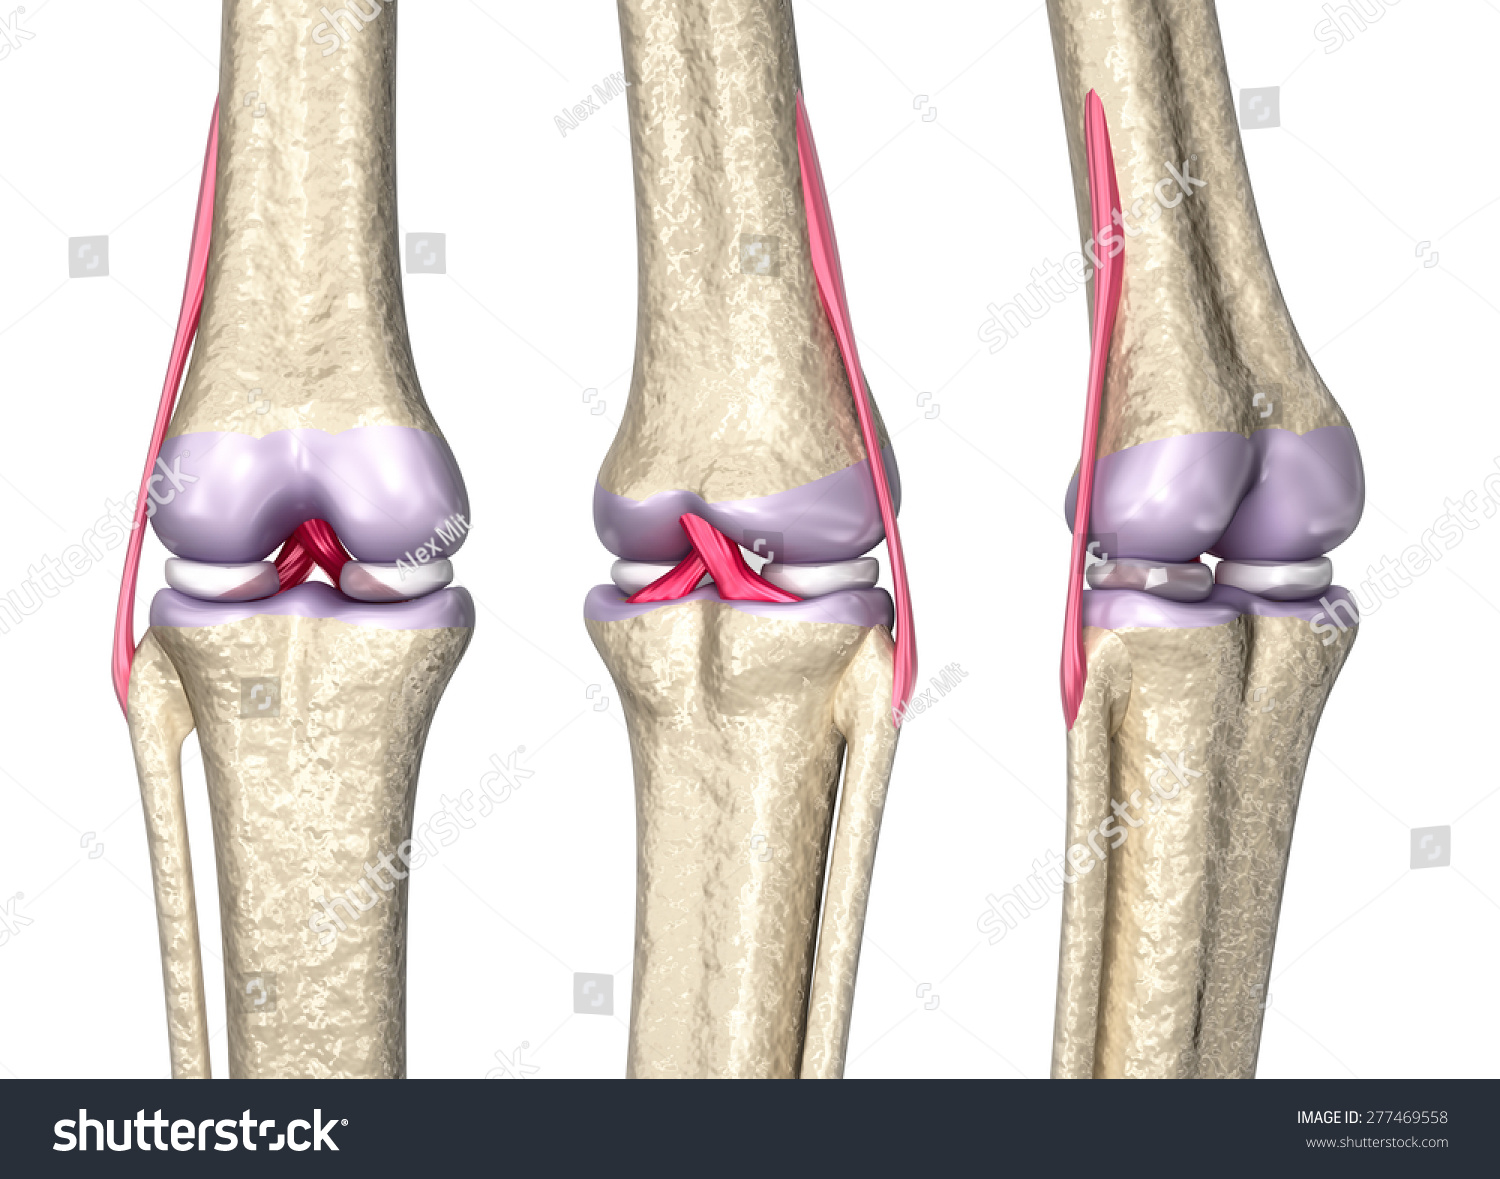 Knee Joint Anatomy 3 D Model Stock Illustration 277469558 - Shutterstock